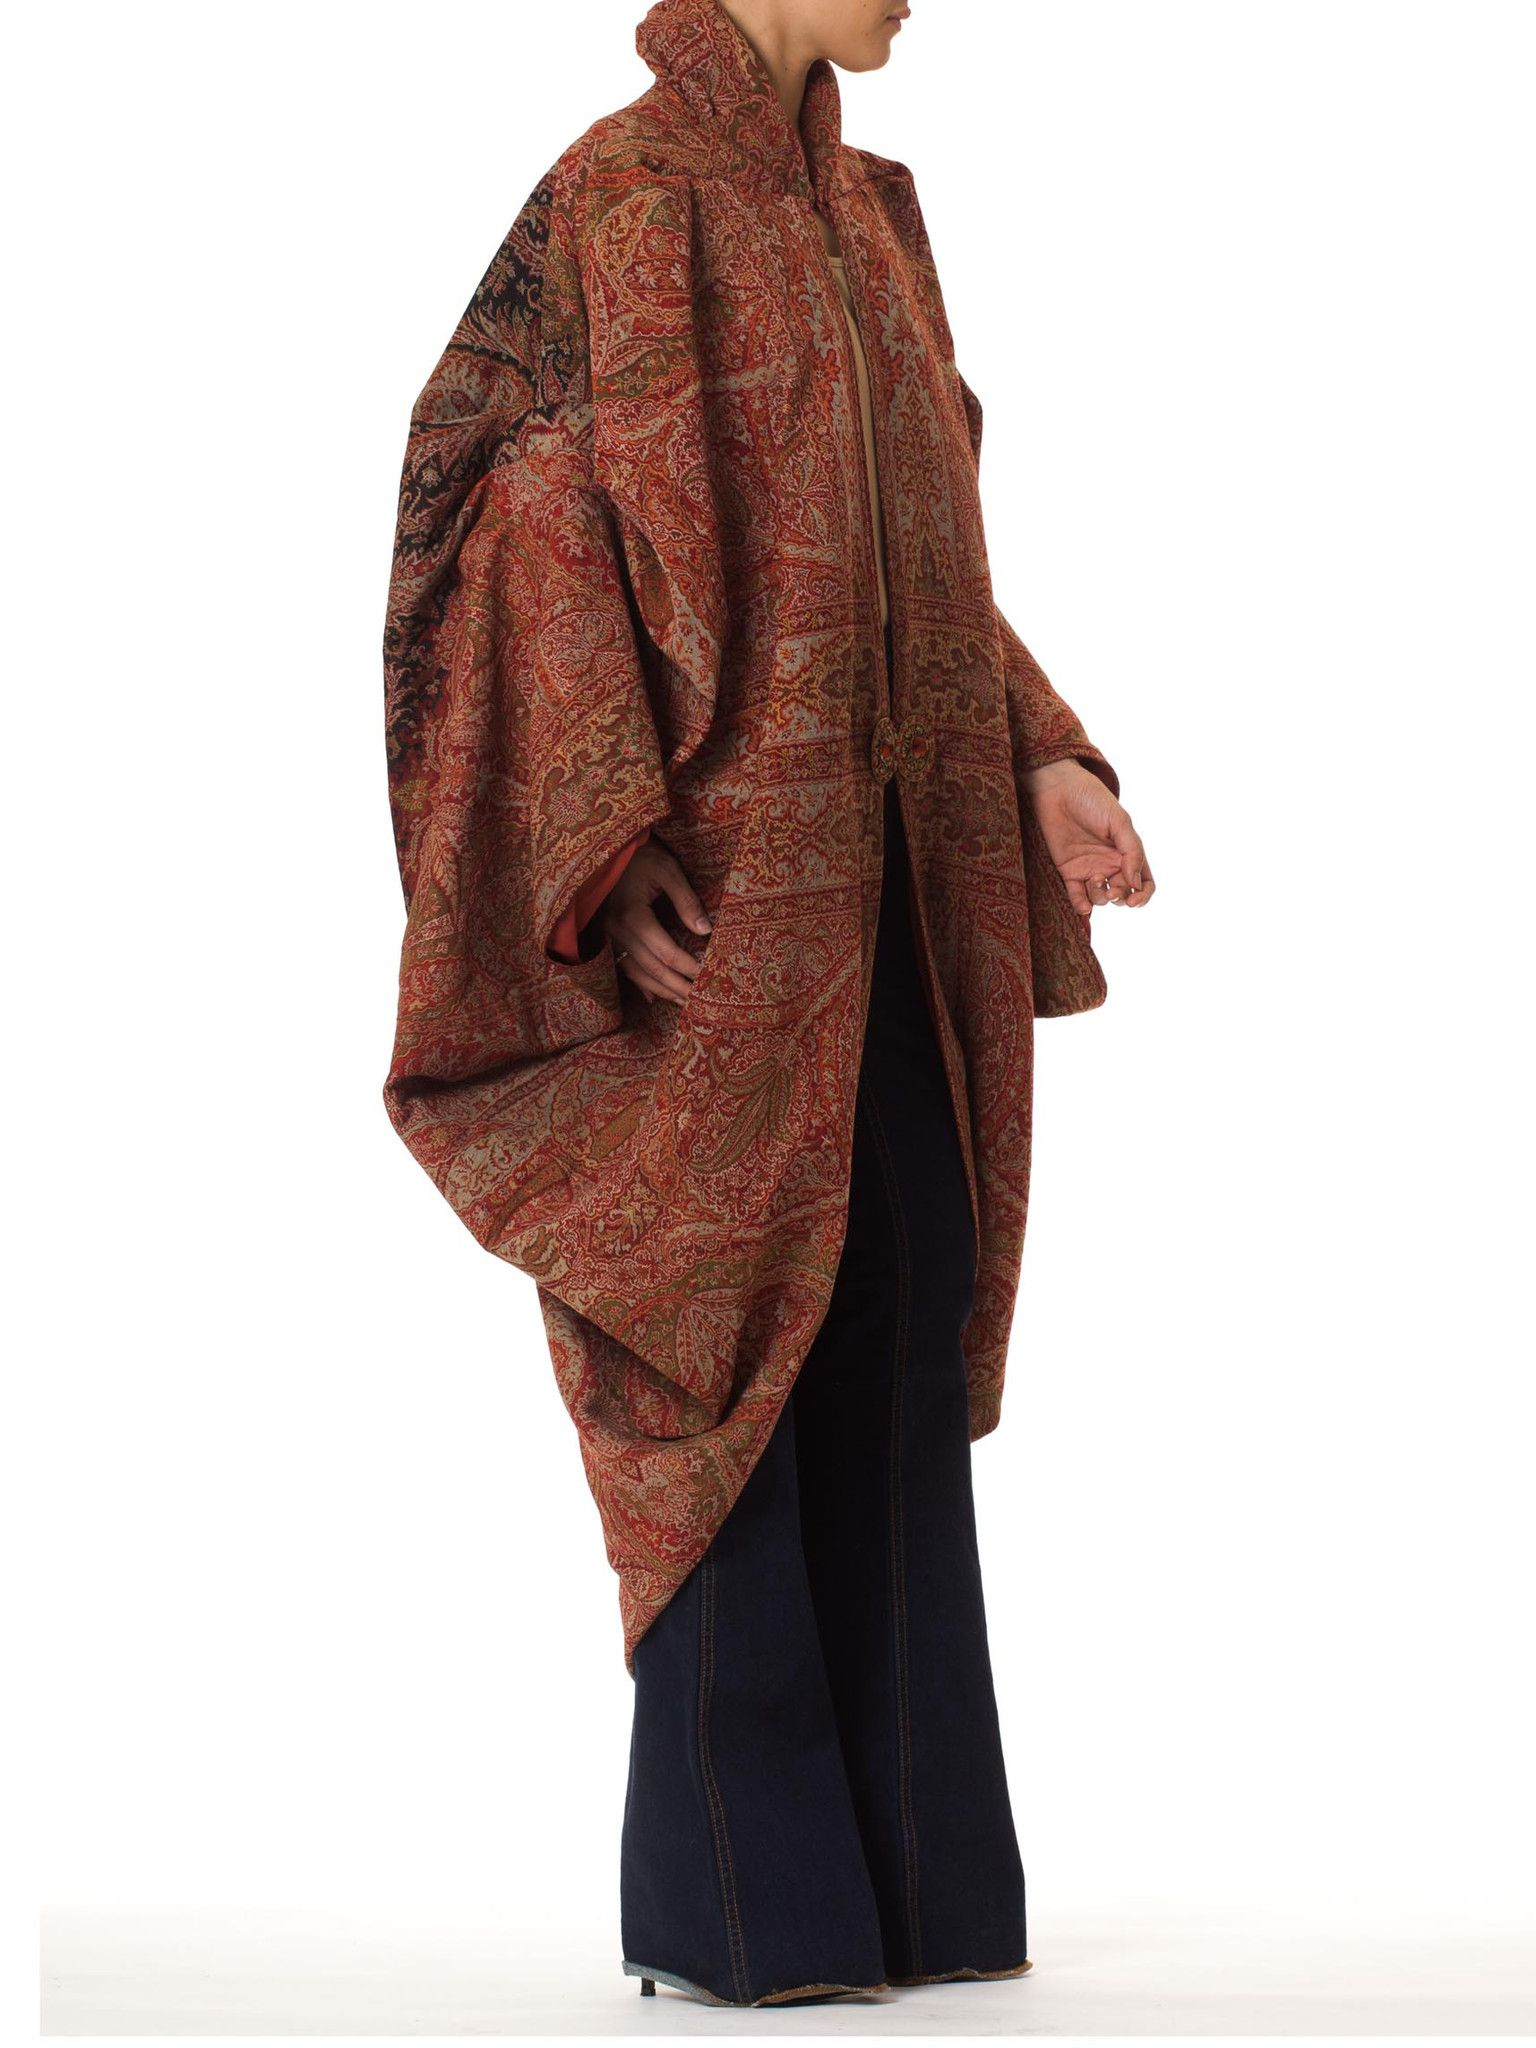 Poiret Inspired Cocoon Coat Made From A Victorian Shawl Cocoon Coat Fashion Period Outfit